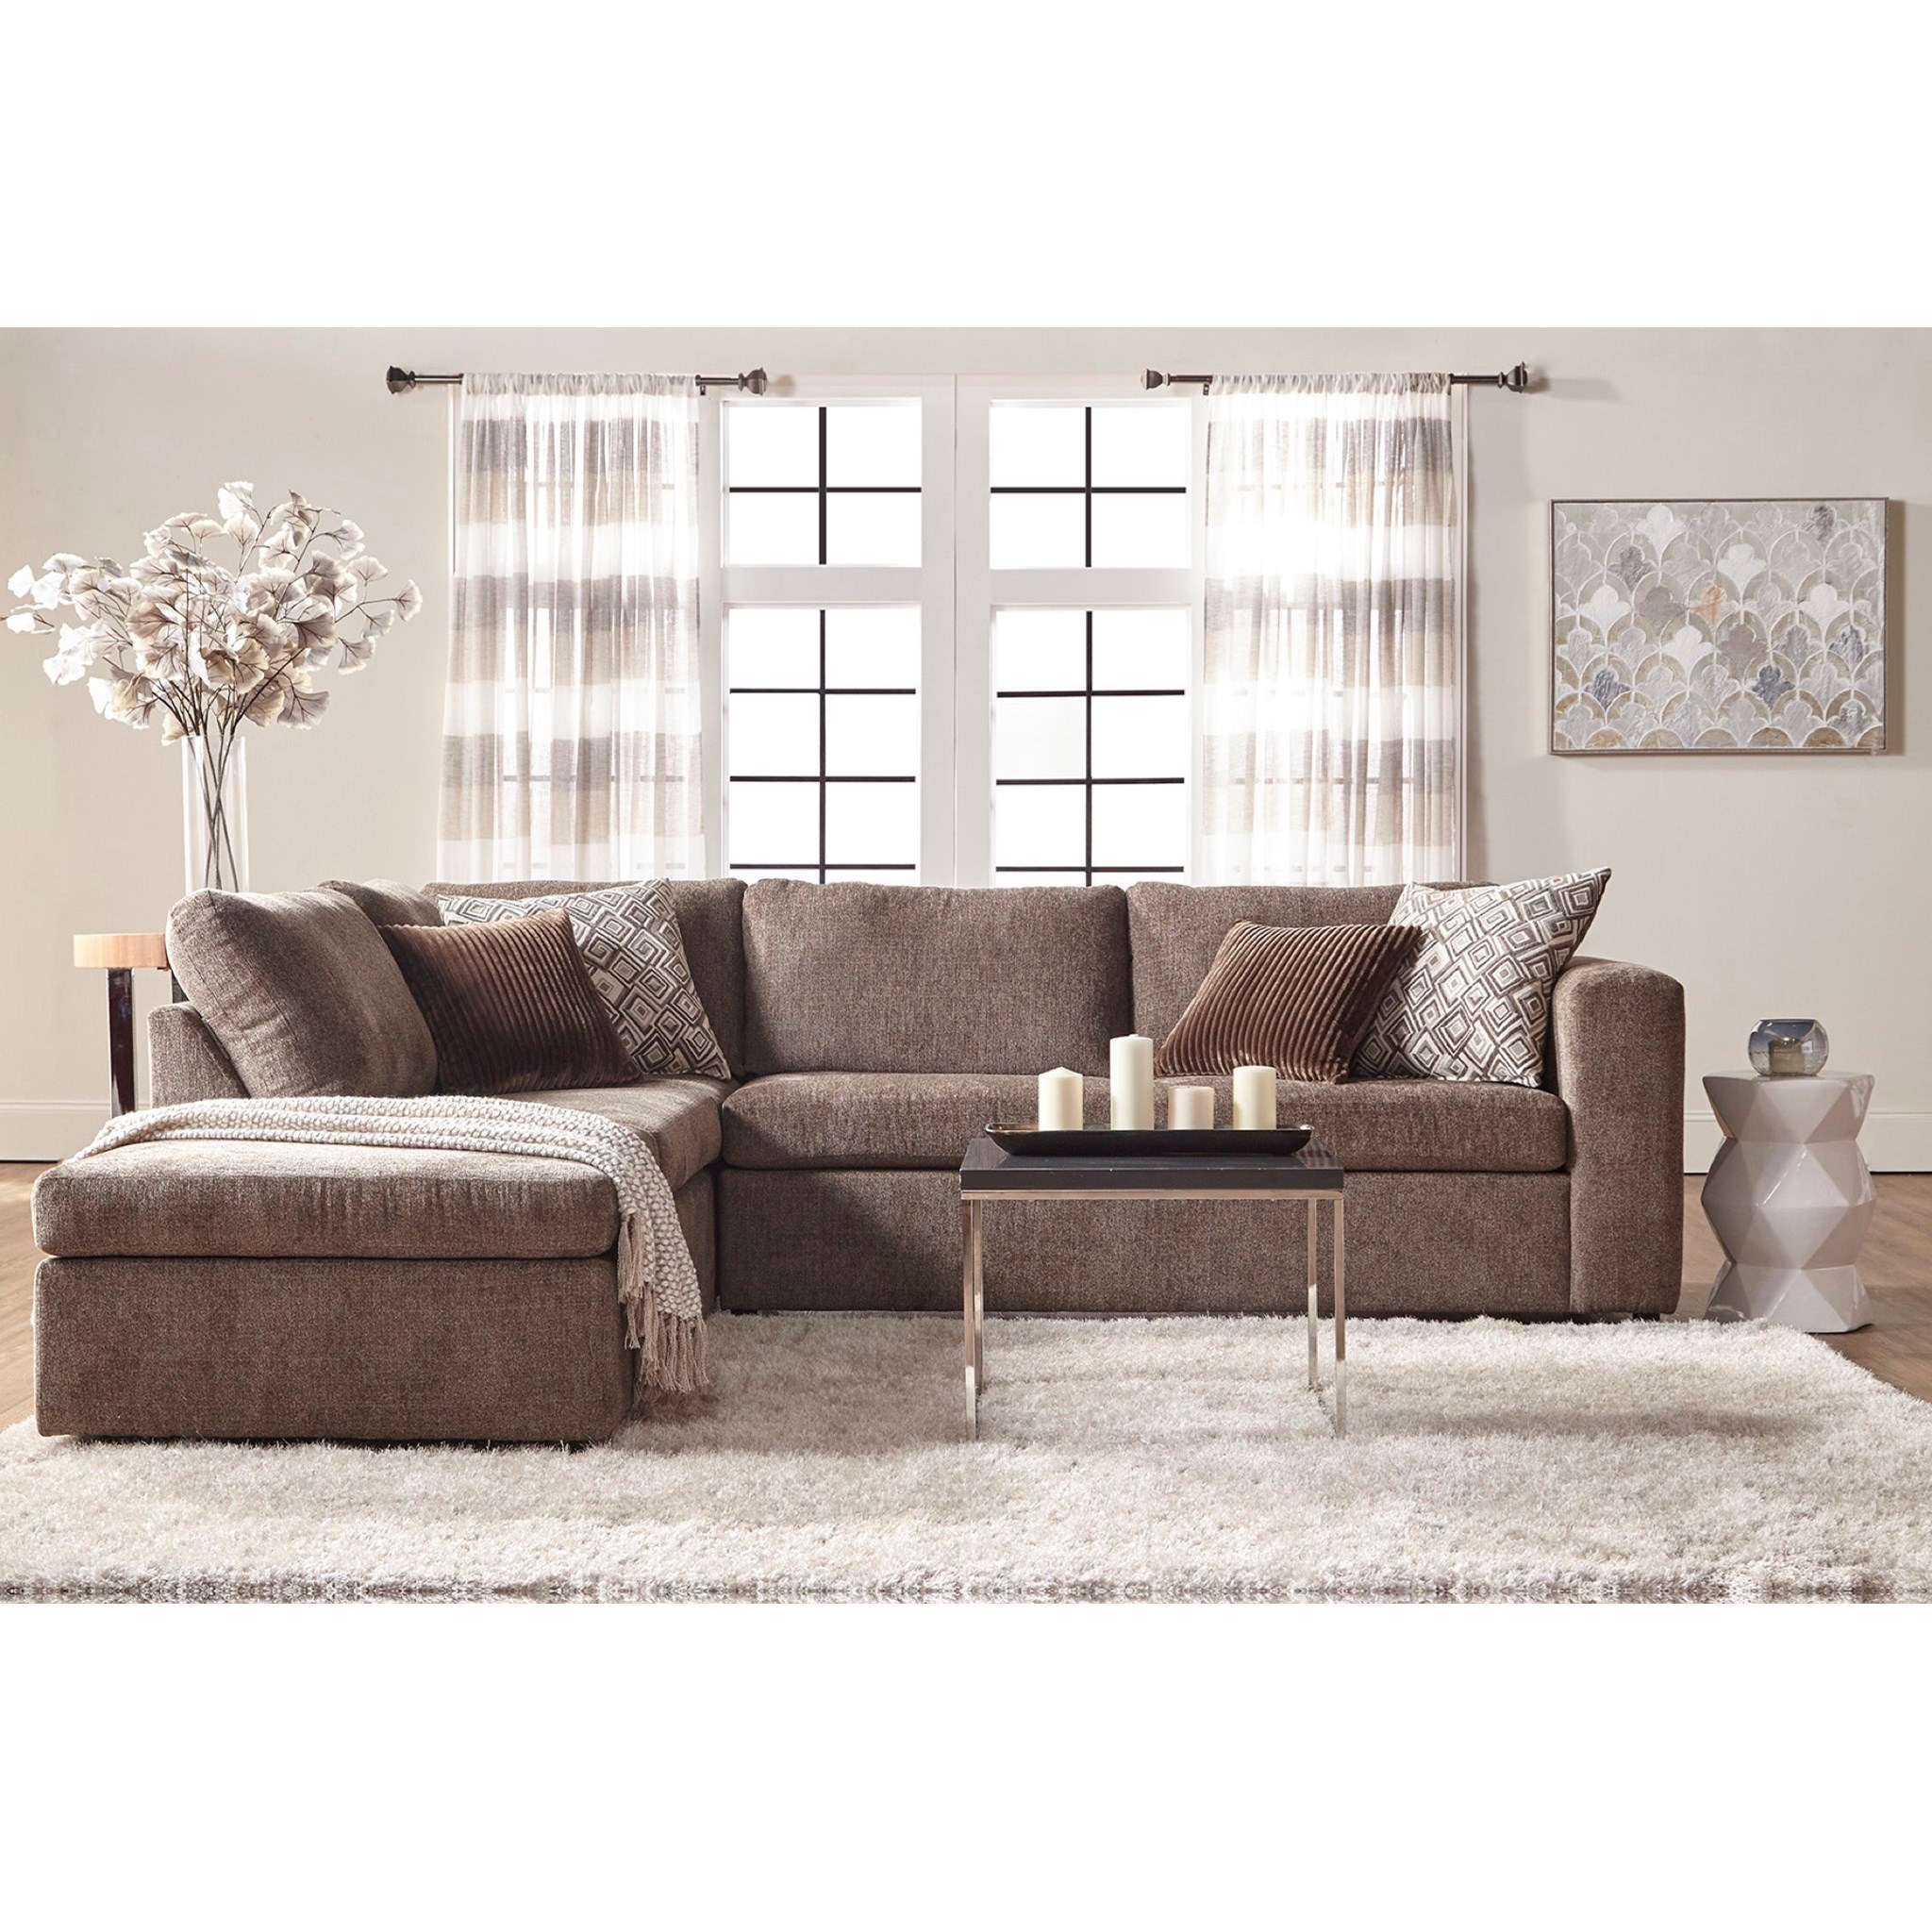 Serta Upholstery Angora Casual Contemporary Sectional Sofa with Chaise  sc 1 st  Rotmans : rotmans sectionals - Sectionals, Sofas & Couches